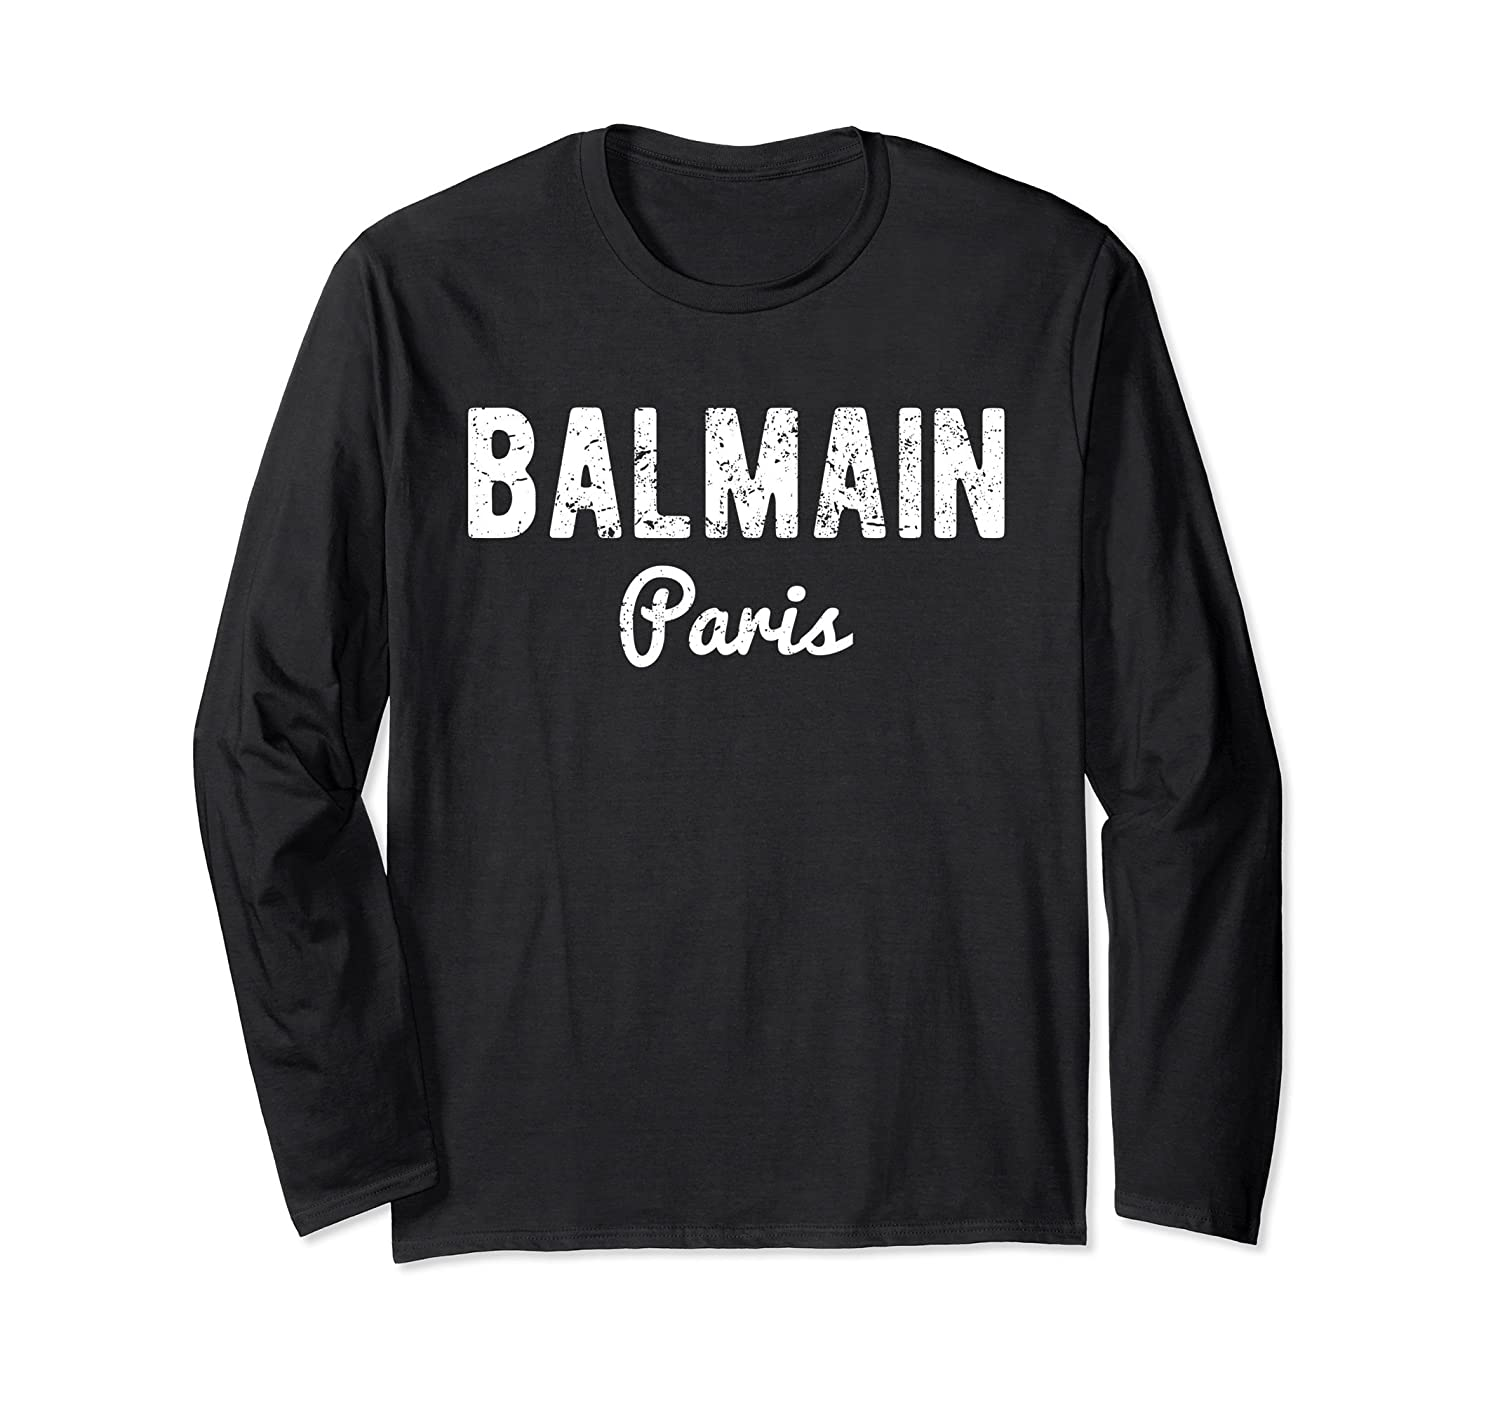 Balmain Paris T-shirt - Long Sleeve Men Women-alottee gift